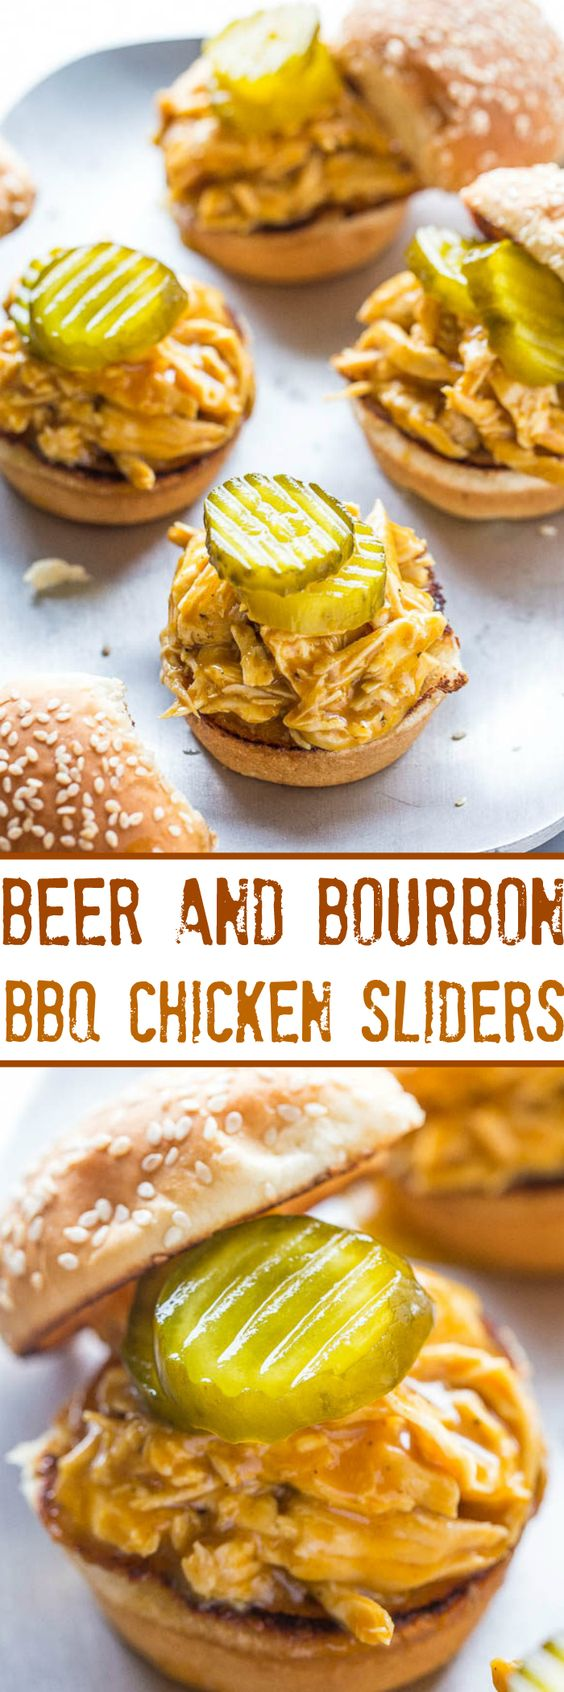 ... Chicken Sliders | Recipe | Chicken Sliders, Bourbon and Sliders